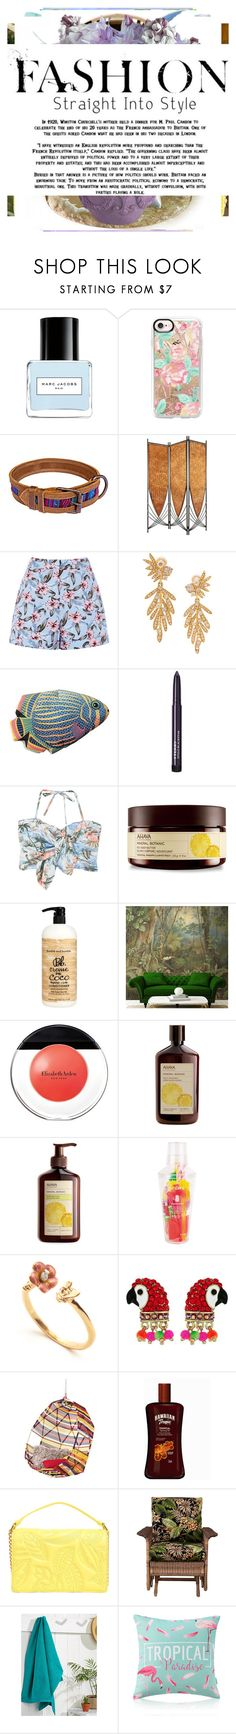 """""""Tropical"""" by knmaem ❤ liked on Polyvore featuring Marc Jacobs, TIKI, Casetify, Oscar de la Renta, Boston Warehouse, By Terry, MANGO, Ahava, Bumble and bumble and Elizabeth Arden"""